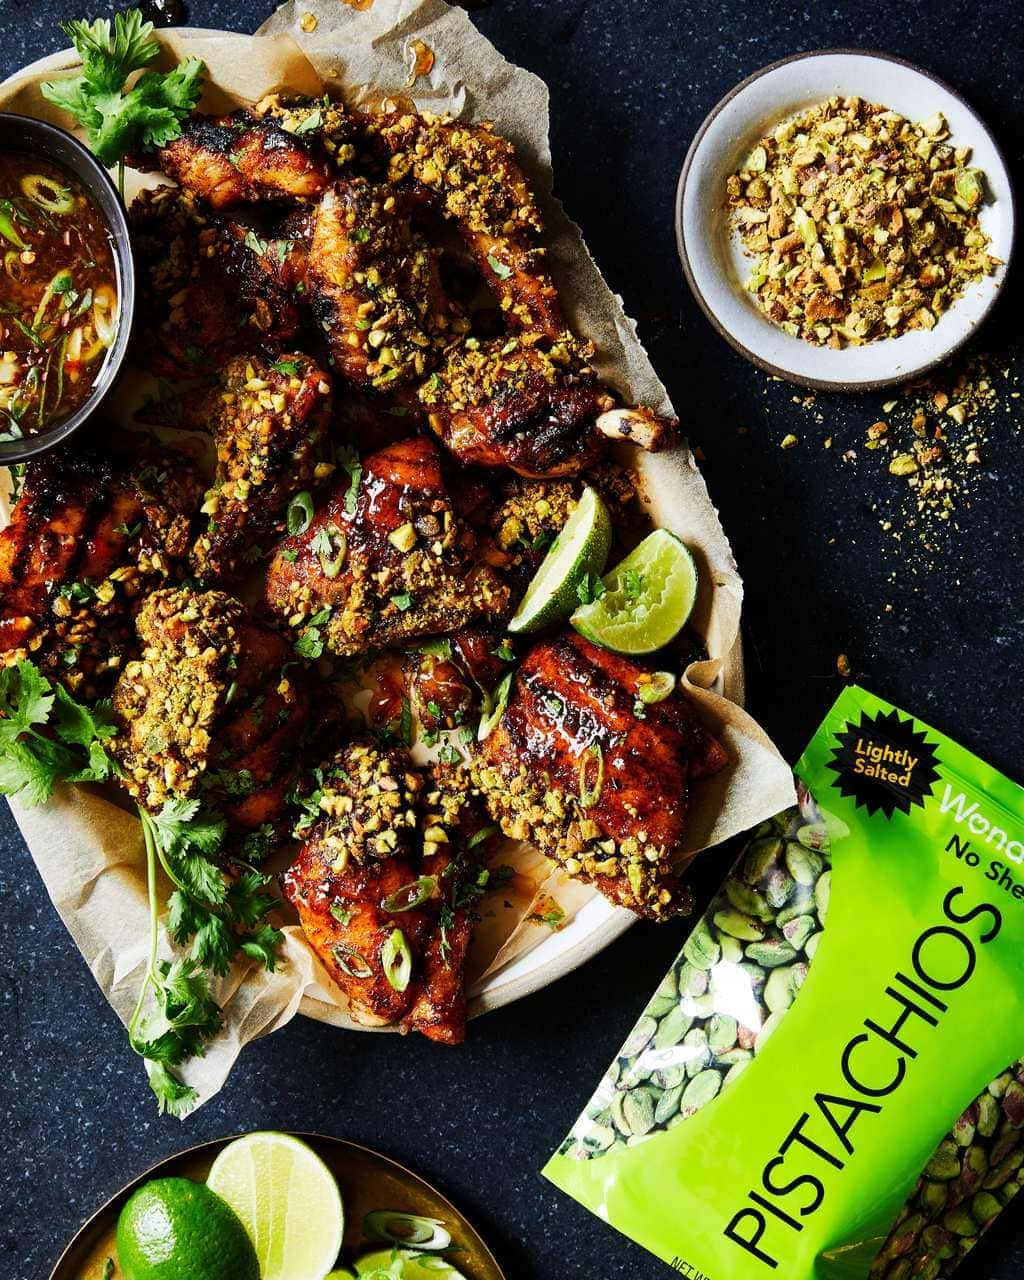 sweet chili chicken recipe with no shells pistachios